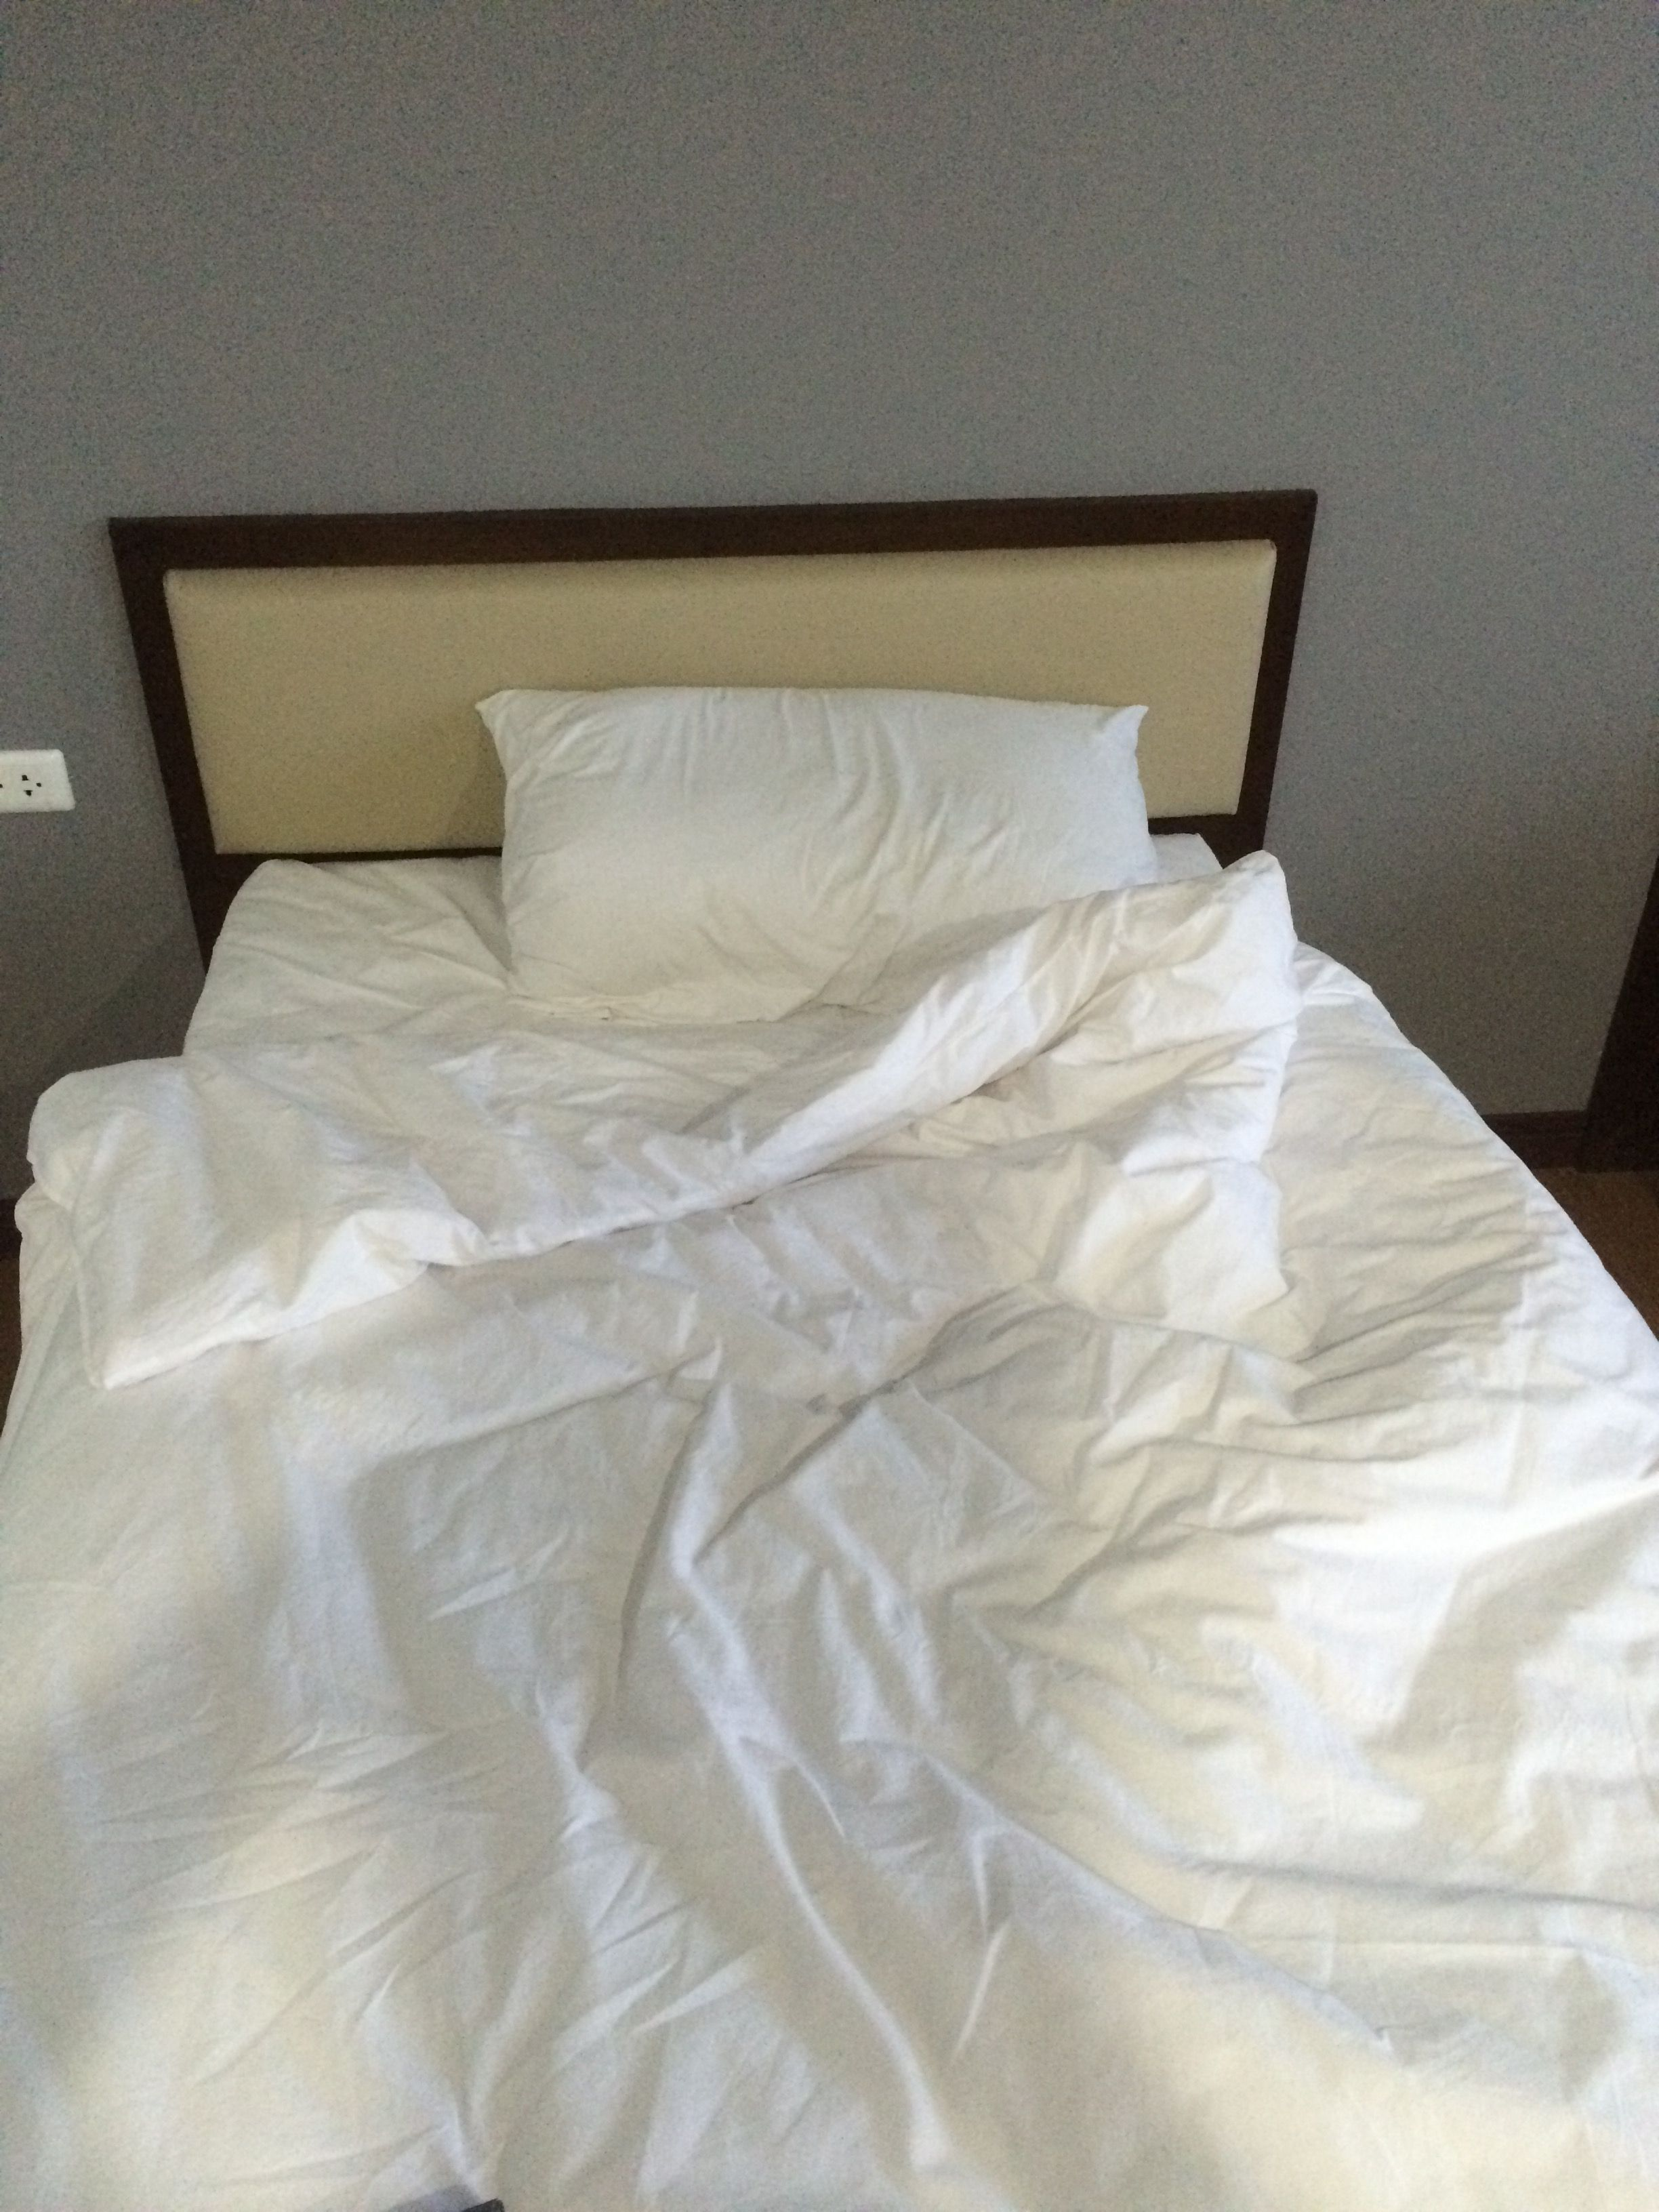 After going to SE Asia several times, discovered they don't normally put sheets on a bed. Hmm